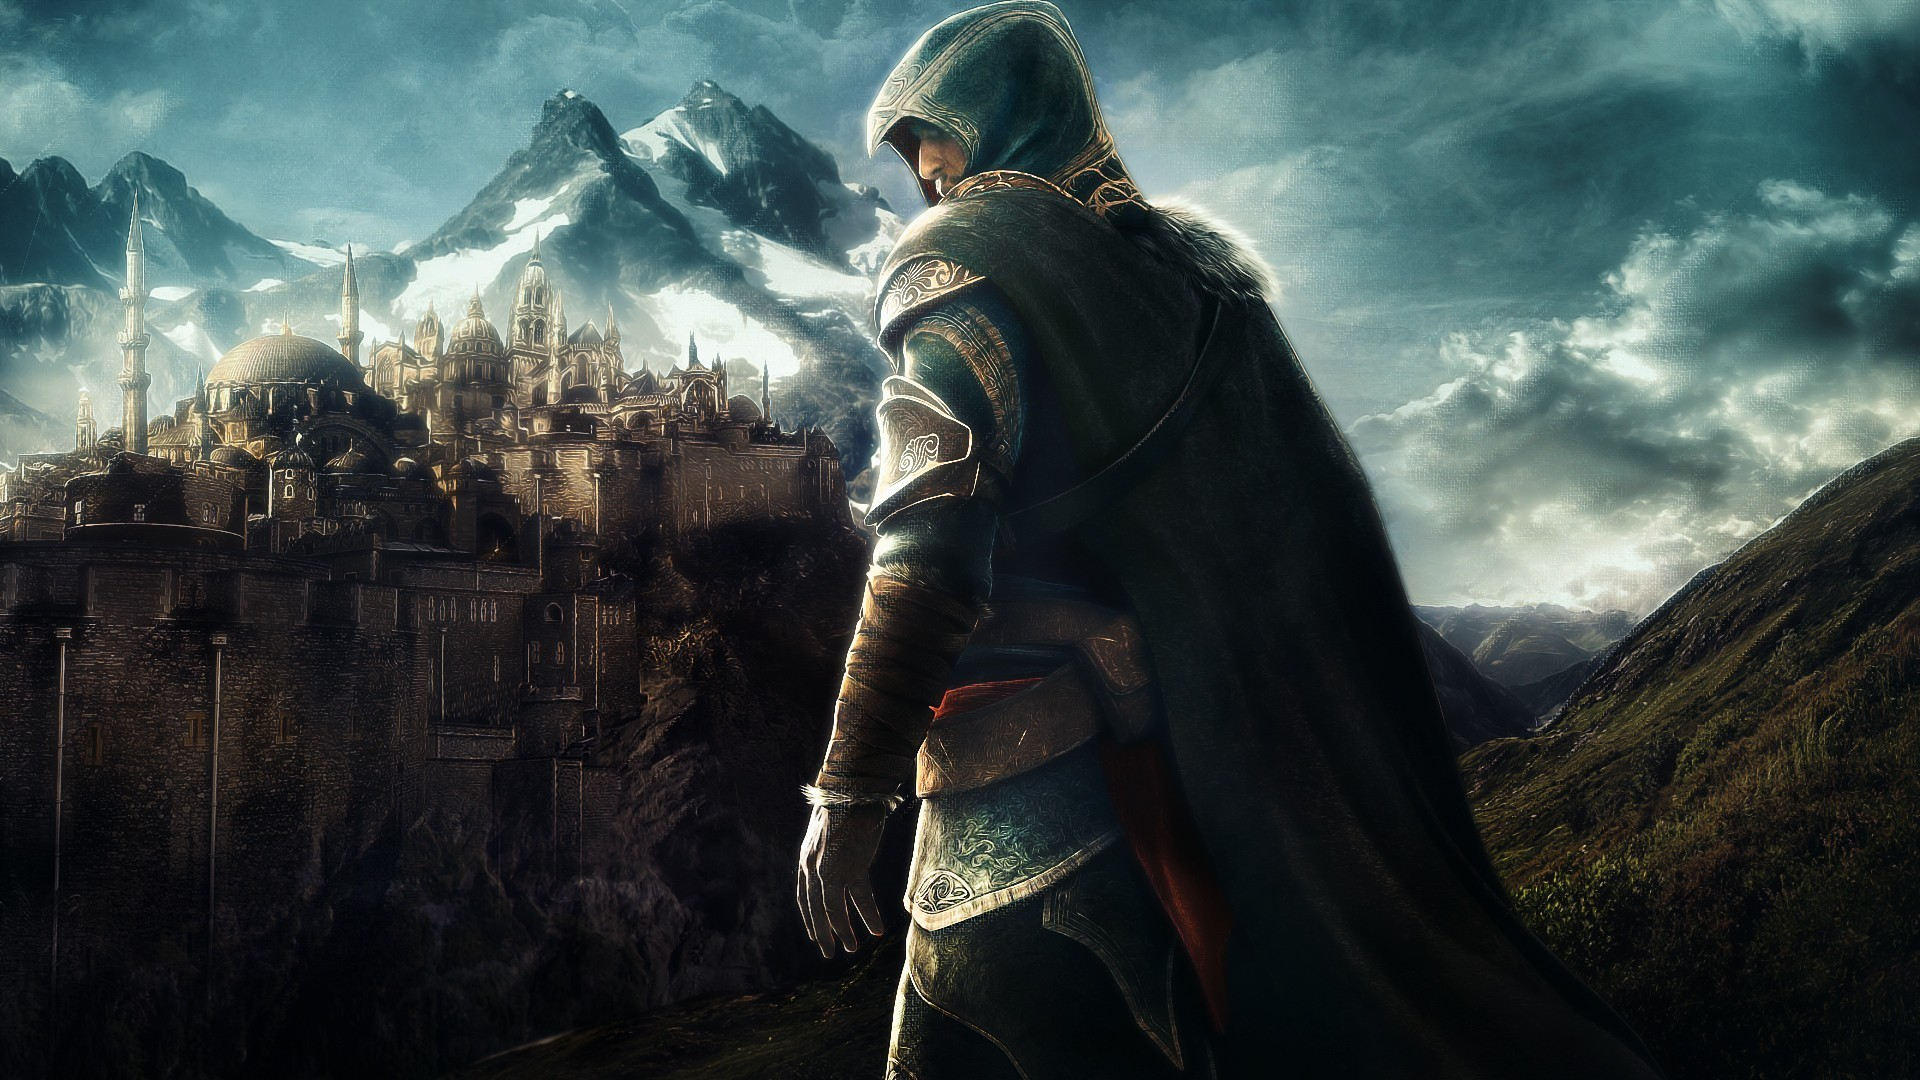 epic gaming wallpapers (73+ images)